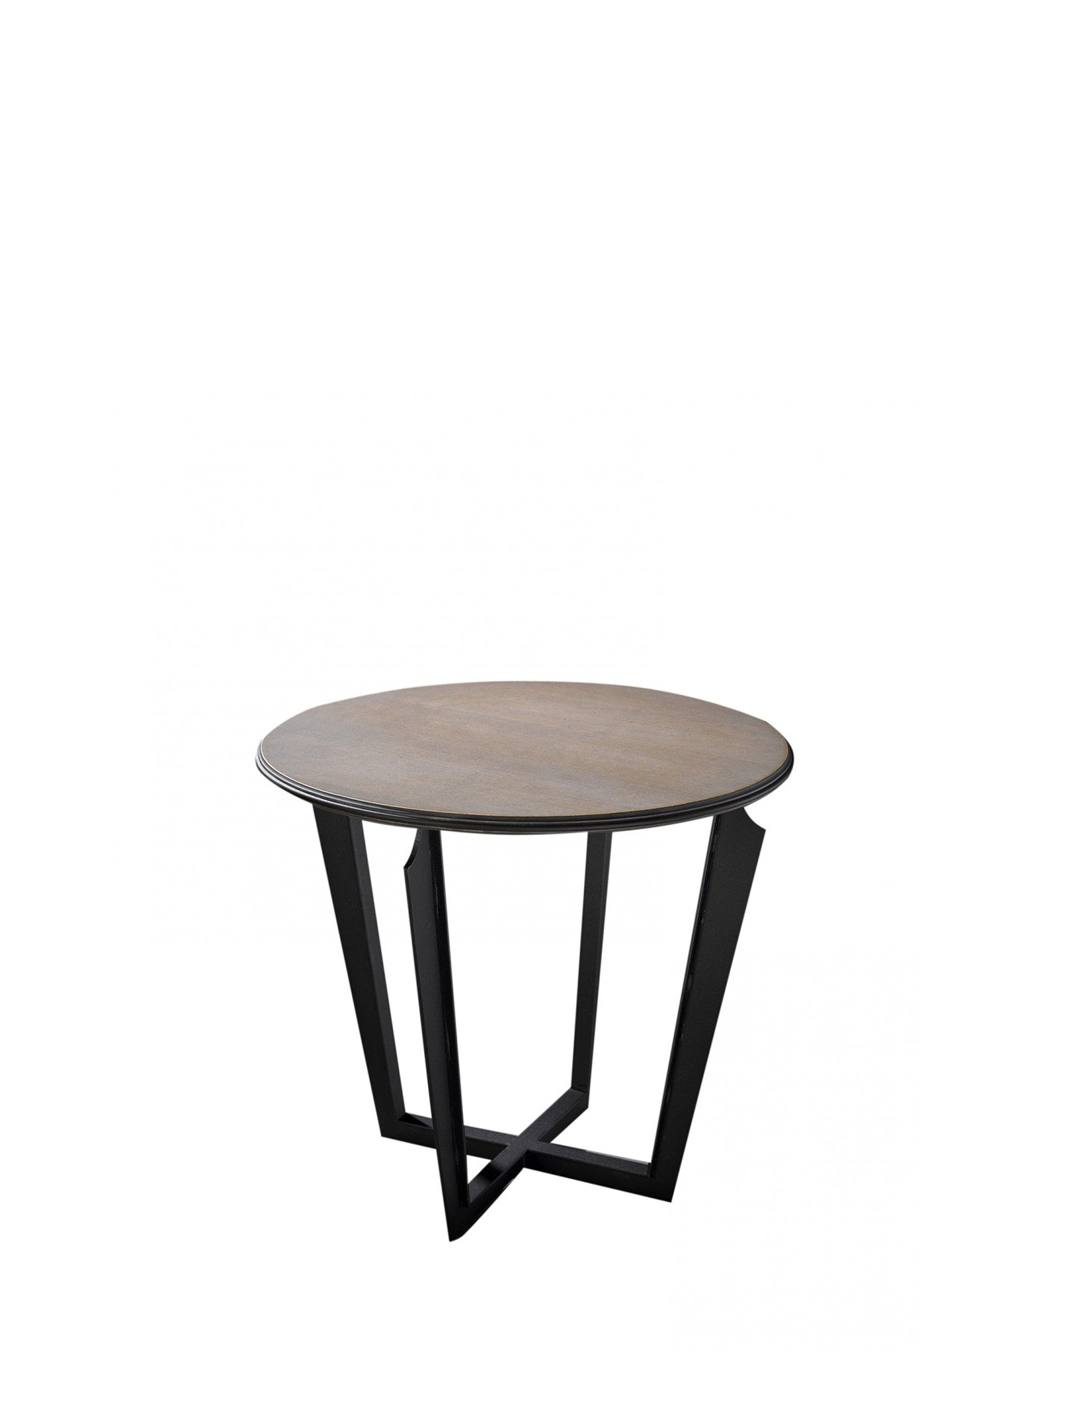 contemporary side table, modern side table